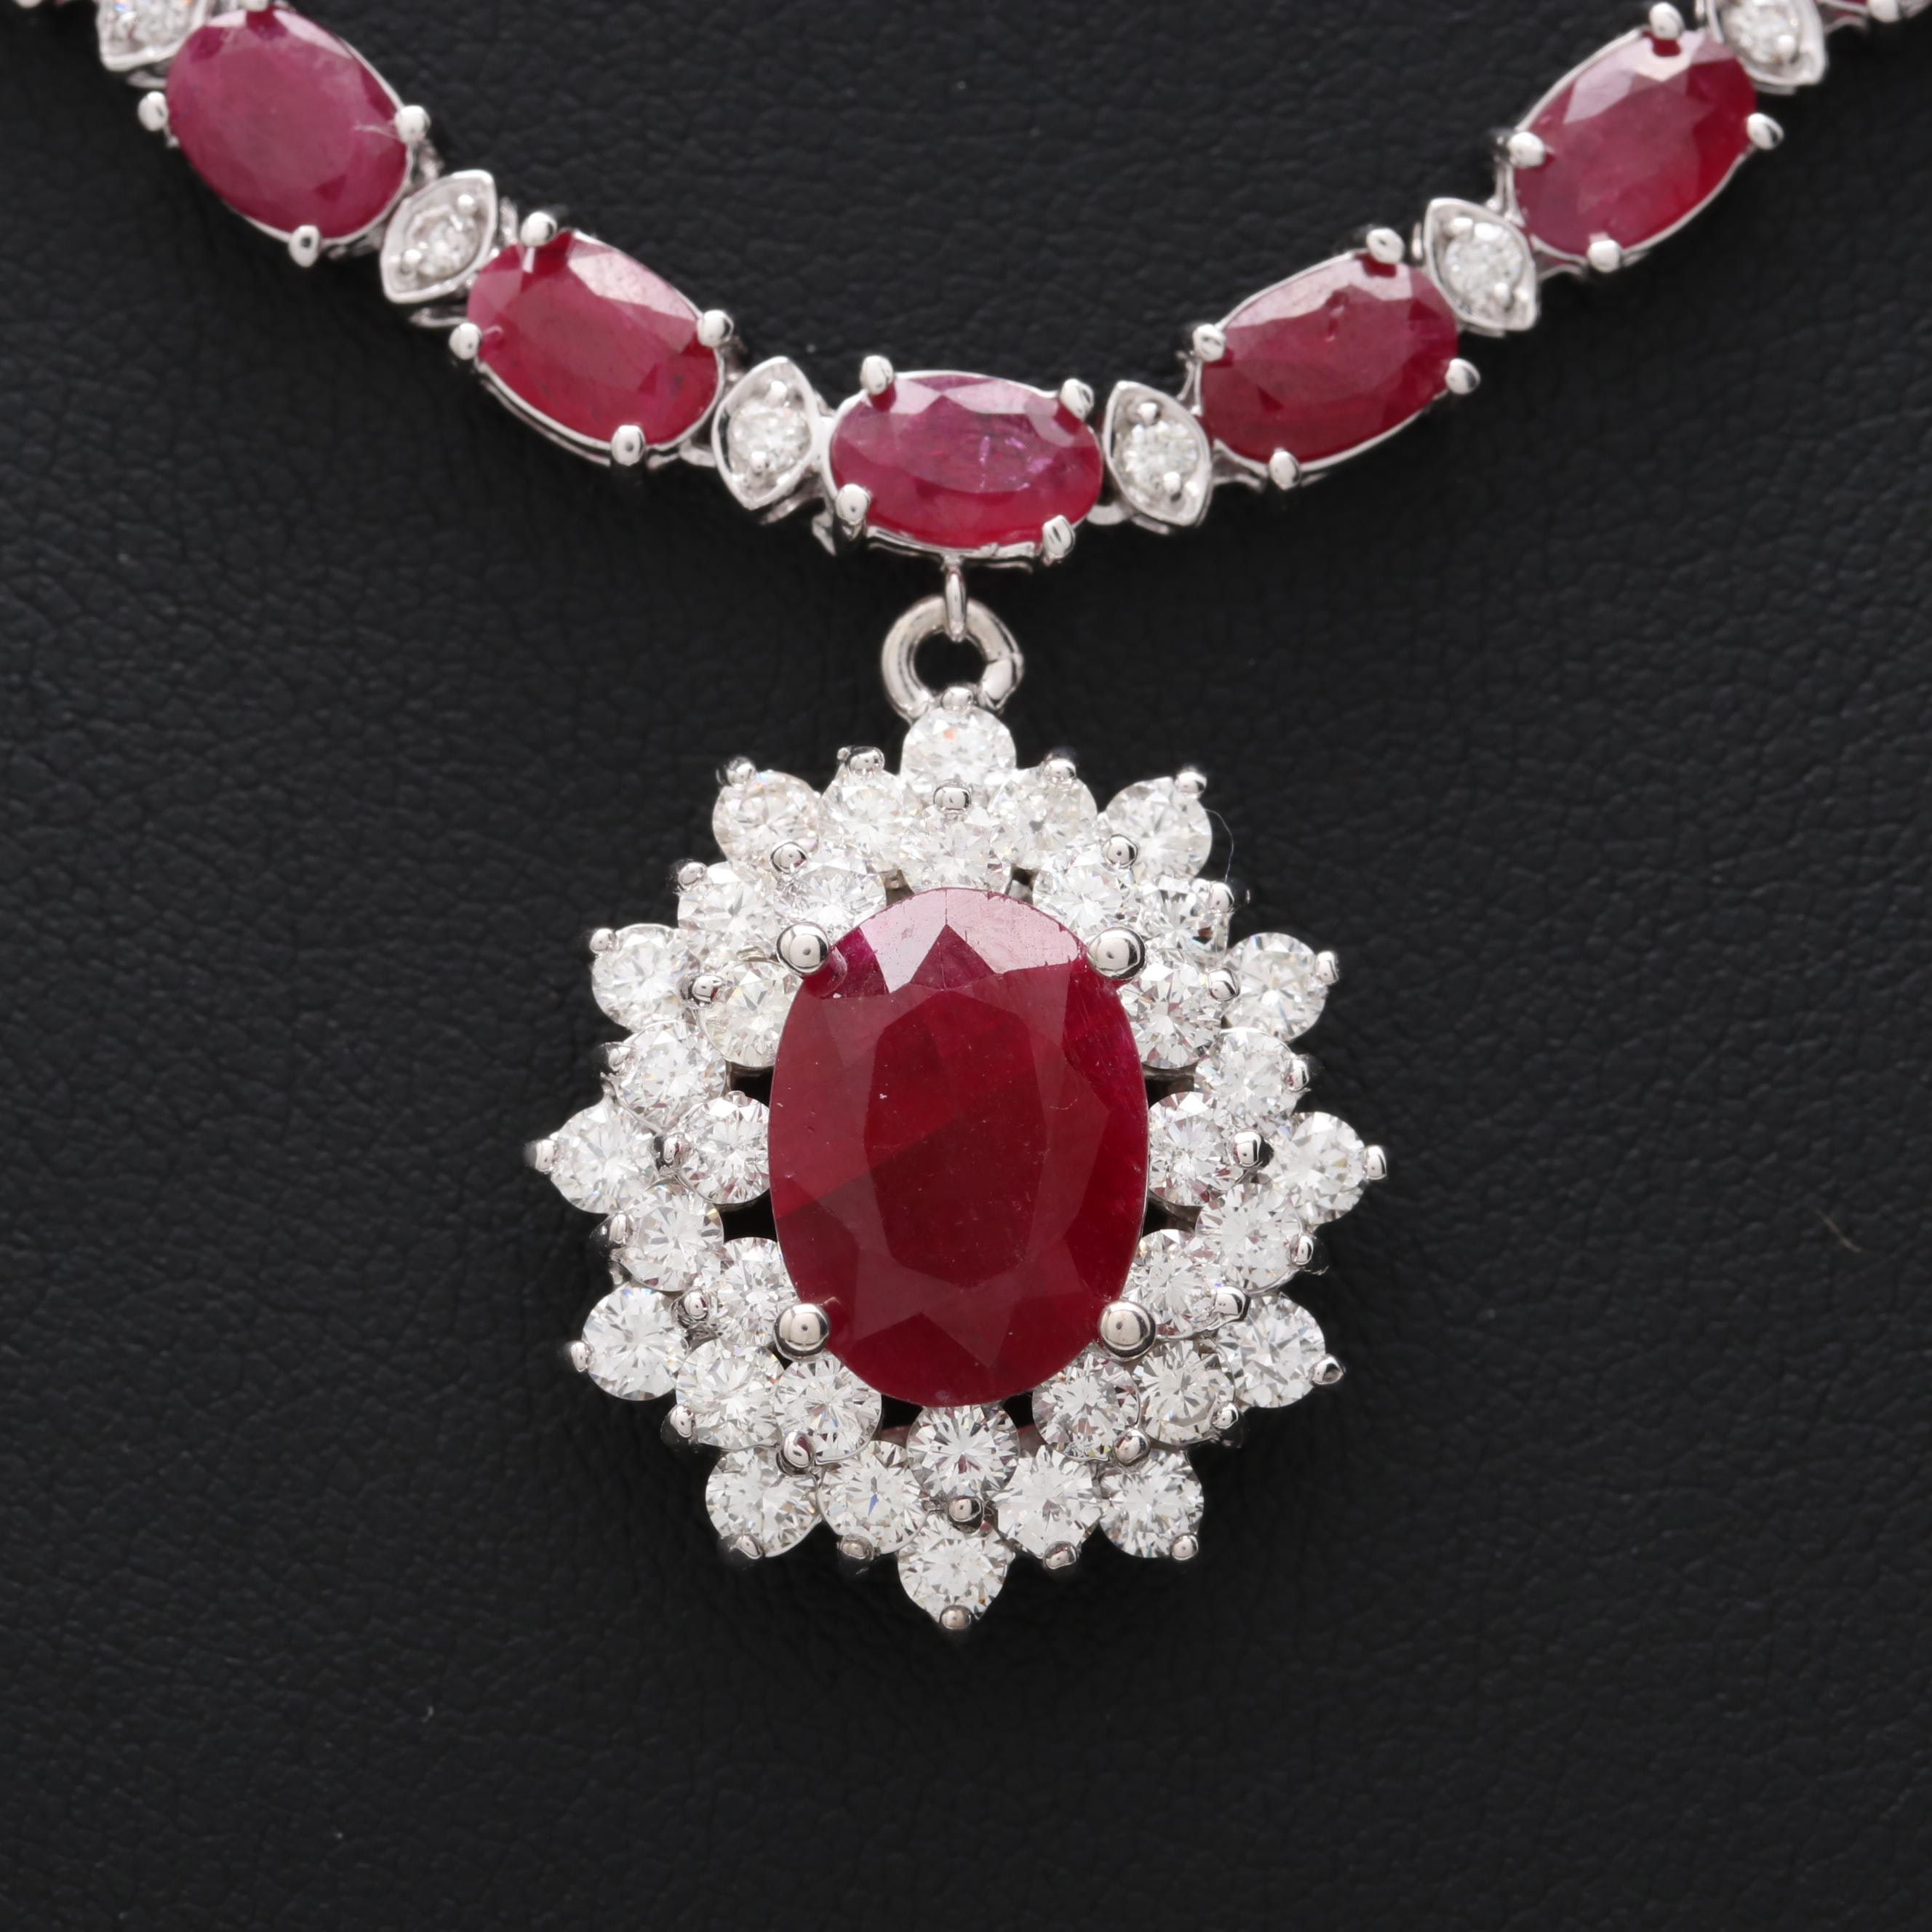 14K White Gold Ruby and 2.83 CTW Diamond Necklace with 1.87 CT Center Stone